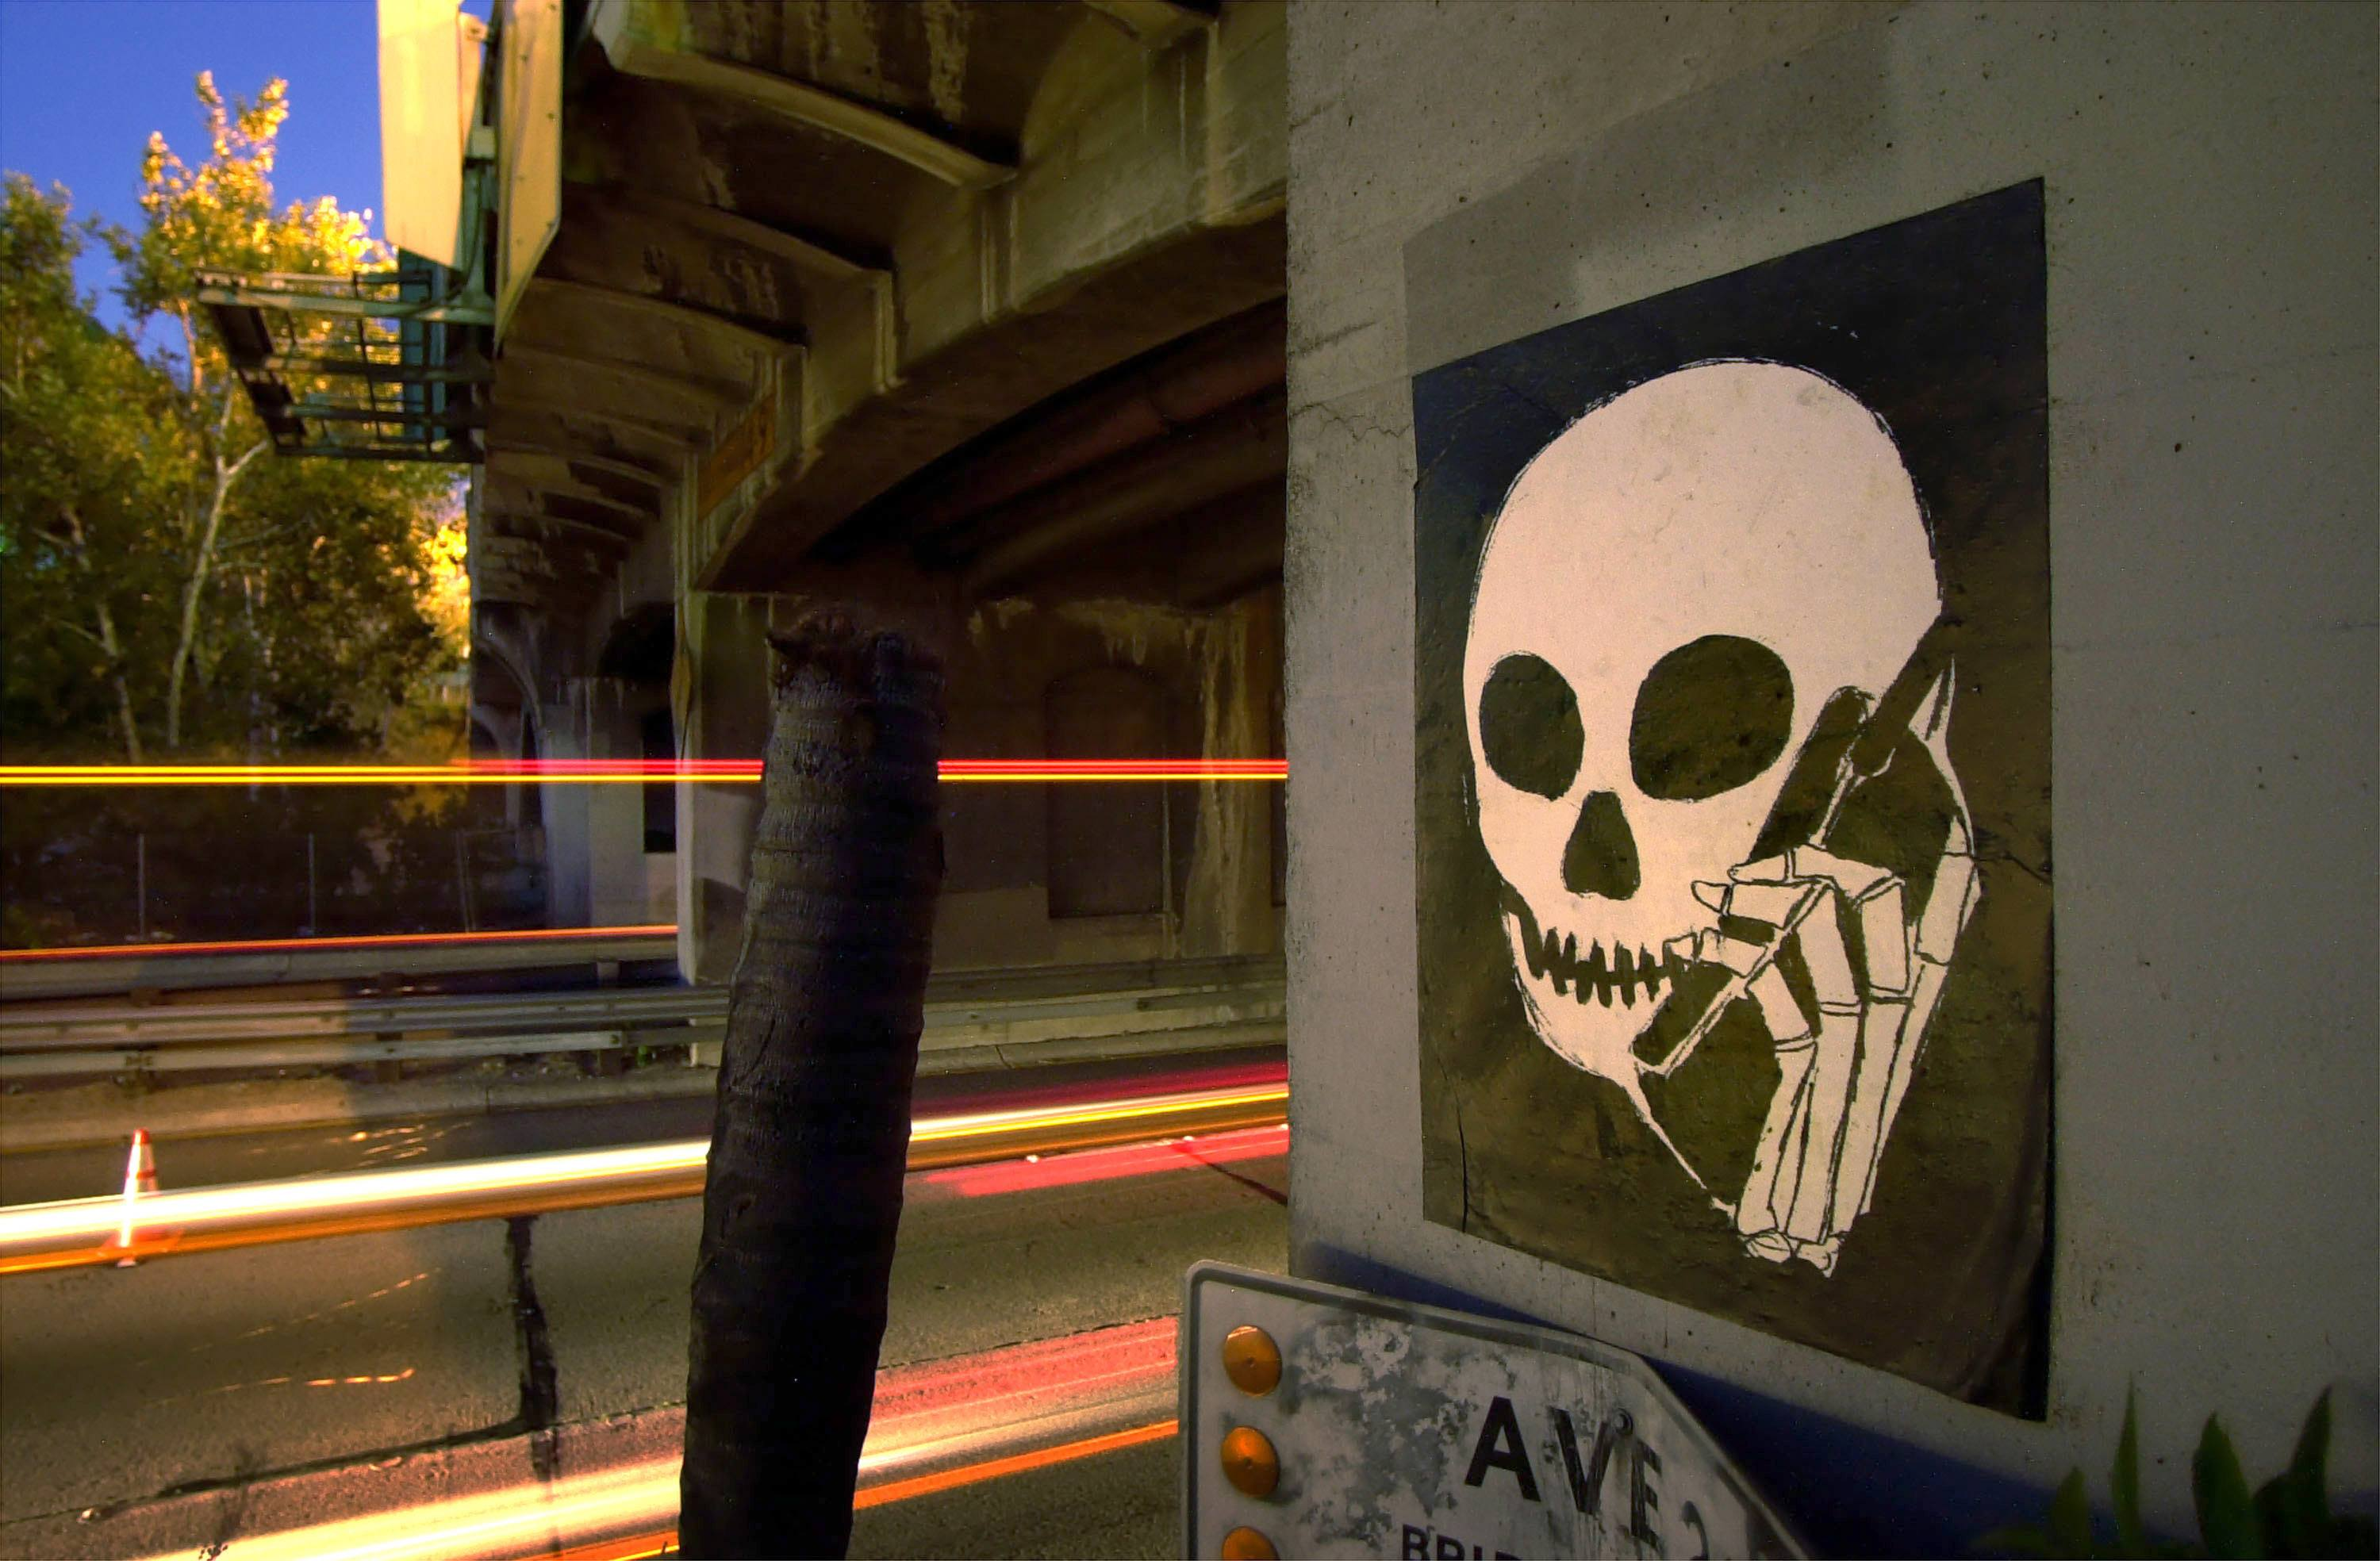 A graffiti image of a skull holding a cell phone is painted on an underpass along the Pasadena Freeway